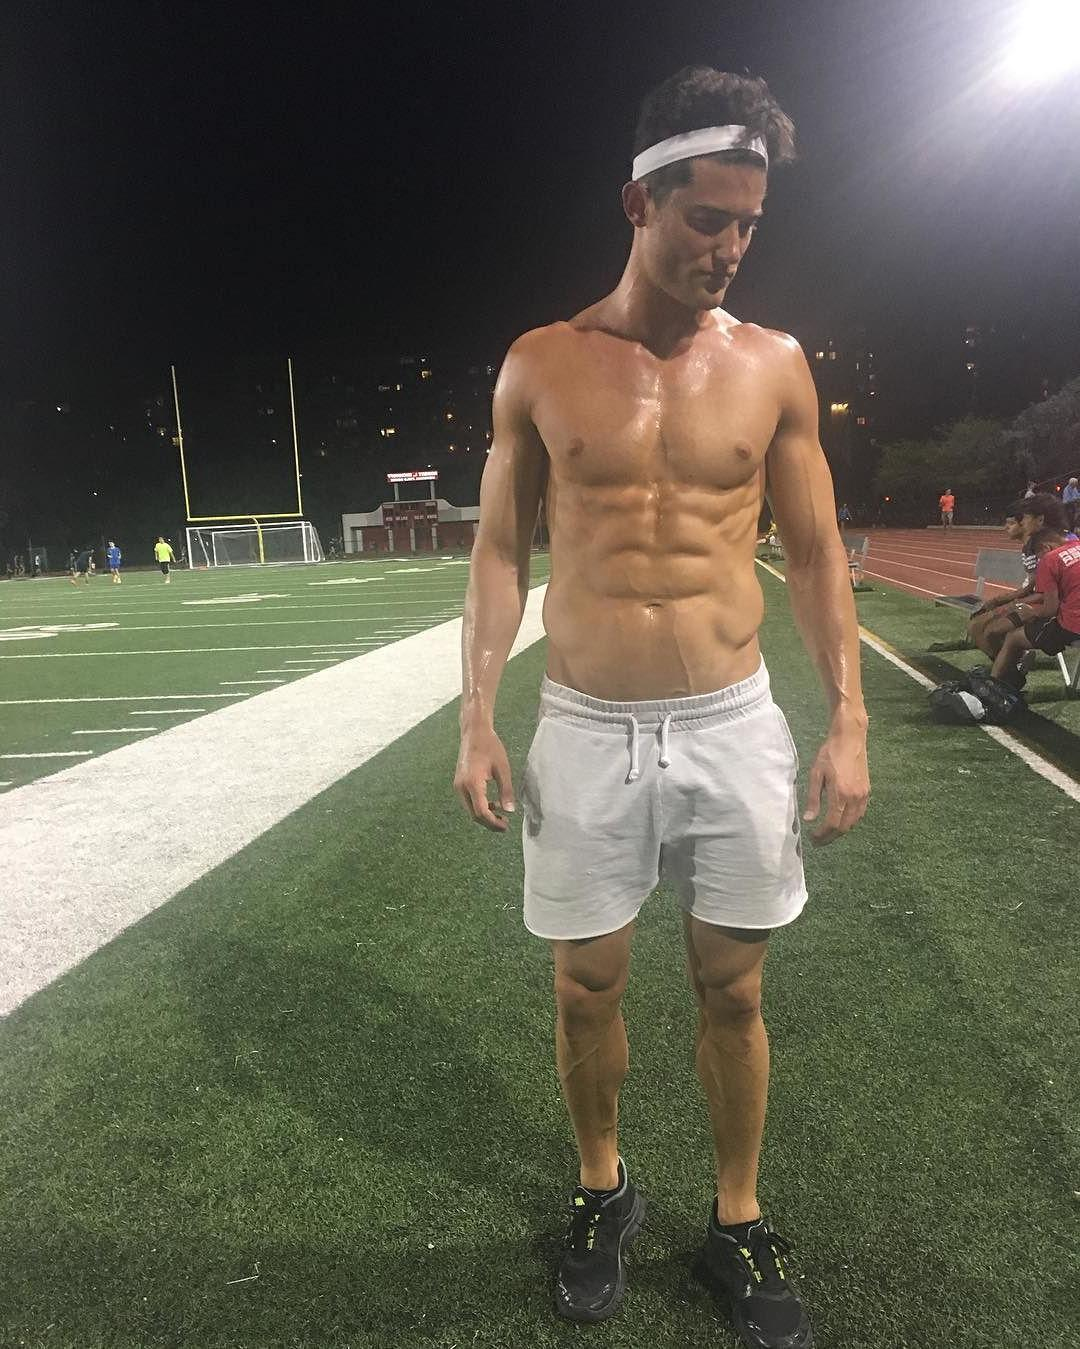 silly-sexy-shirtless-sixpack-abs-college-jock-athlete-sweaty-pecs-green-field